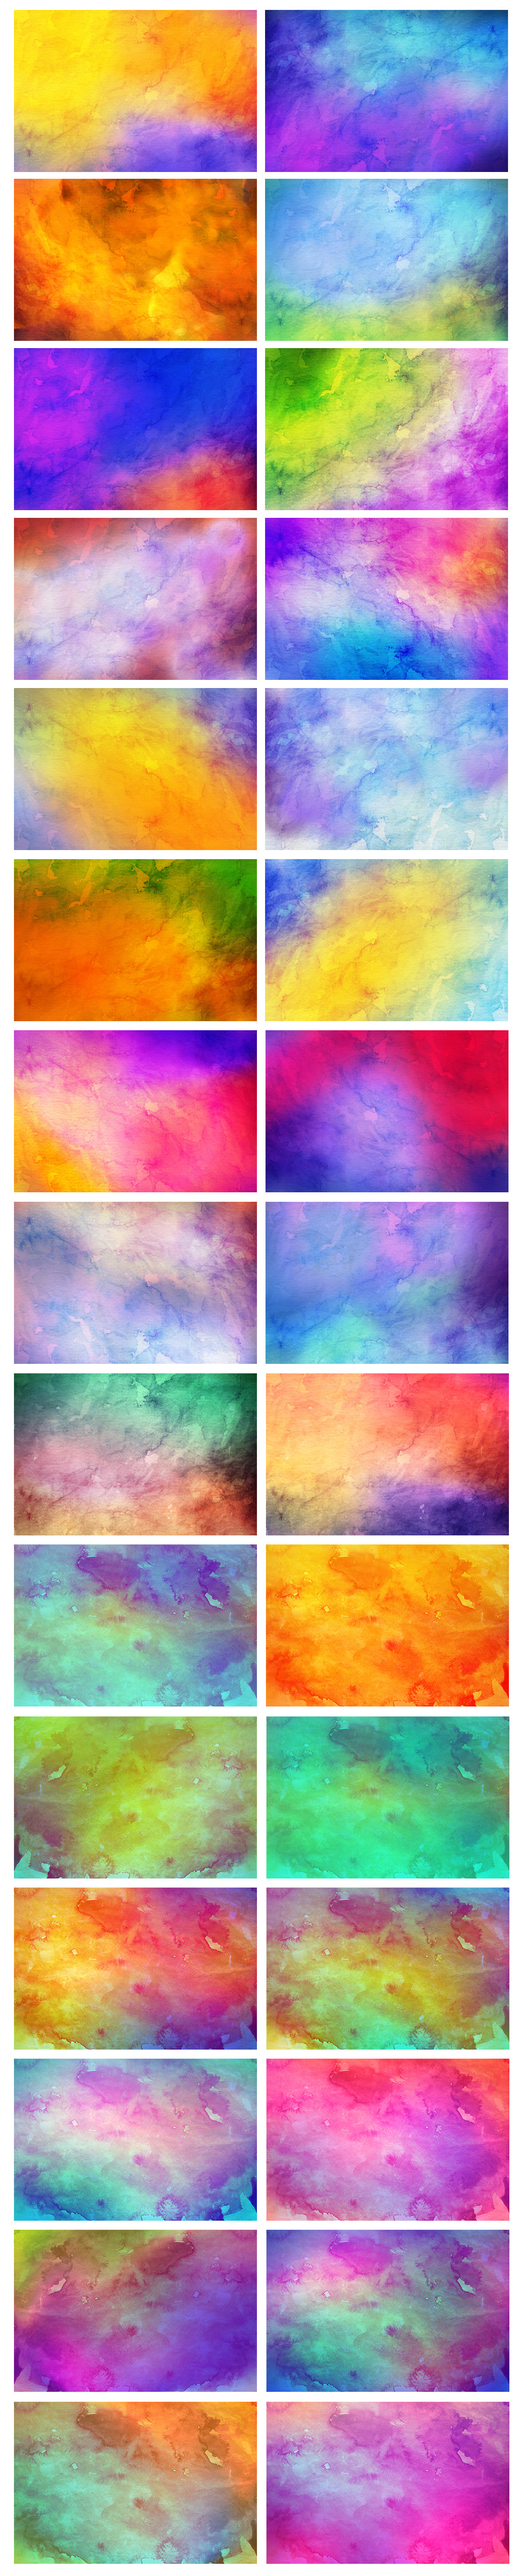 Only Watercolor Backgrounds Bundle example image 8